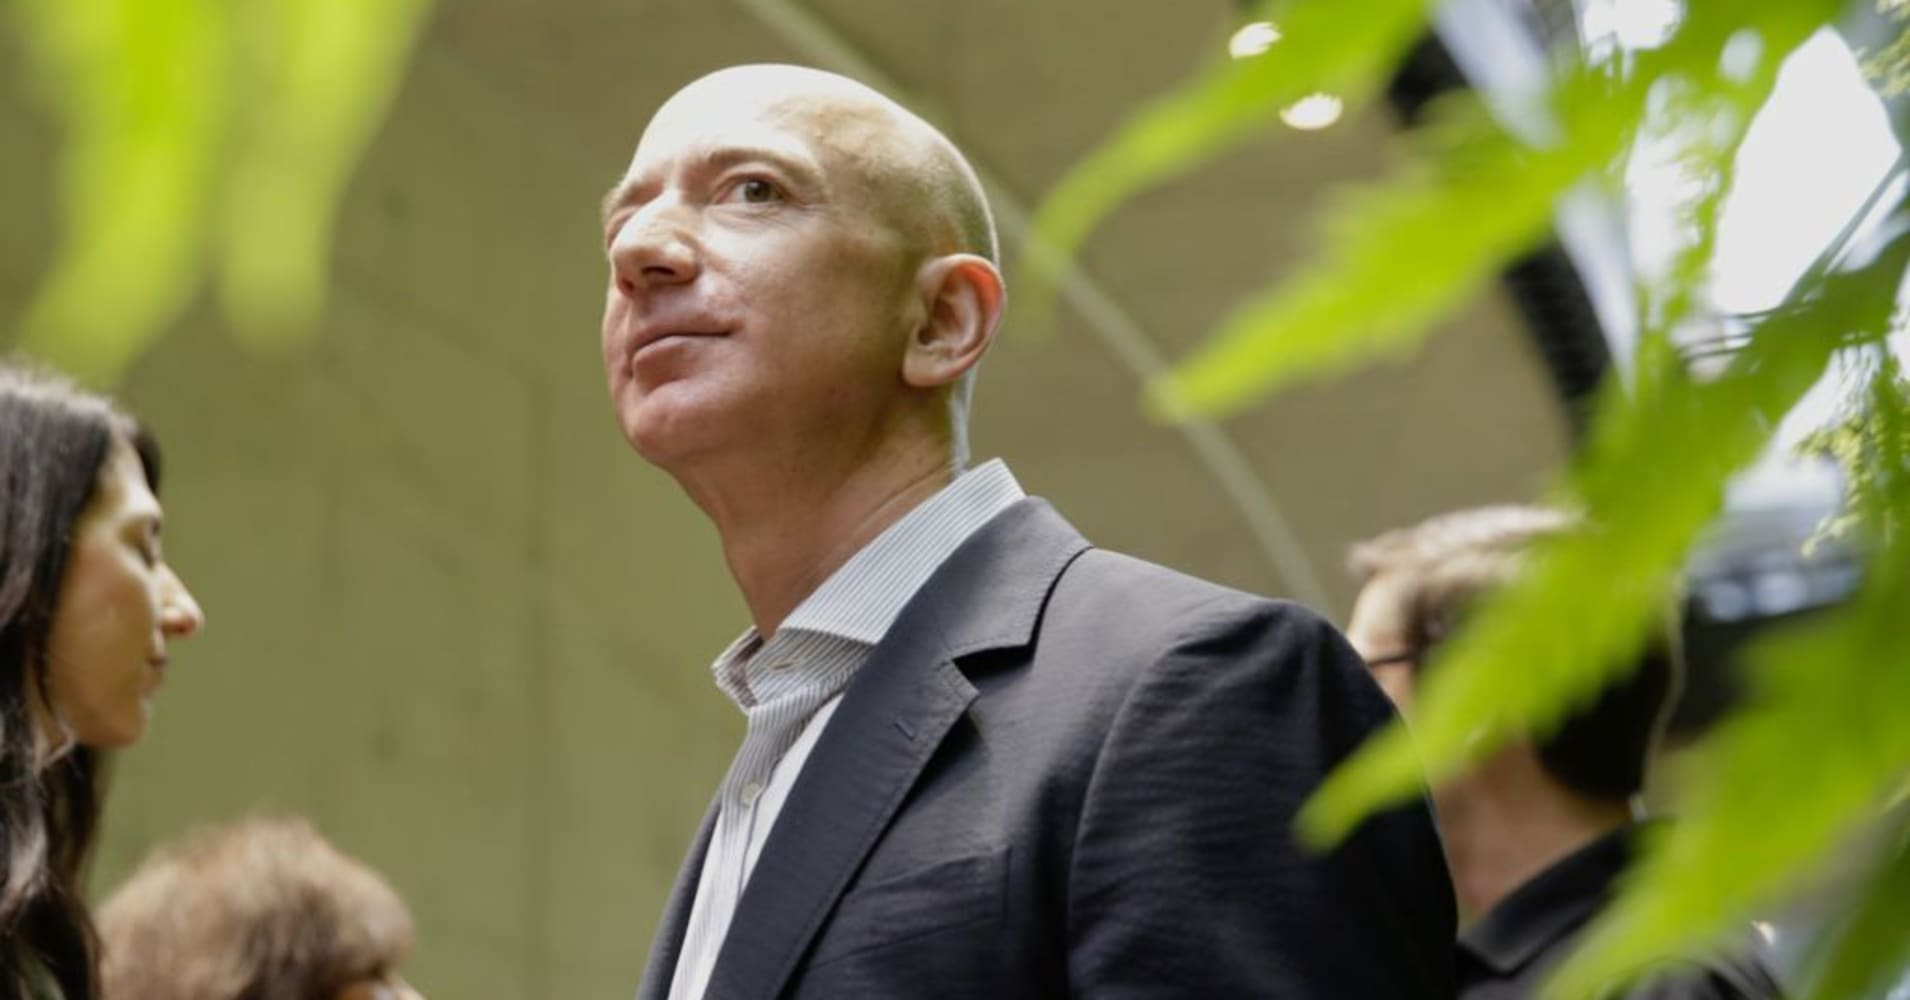 Jeff Bezos doesn't like the idea of 'work-life balance' — here's what he swears by instead